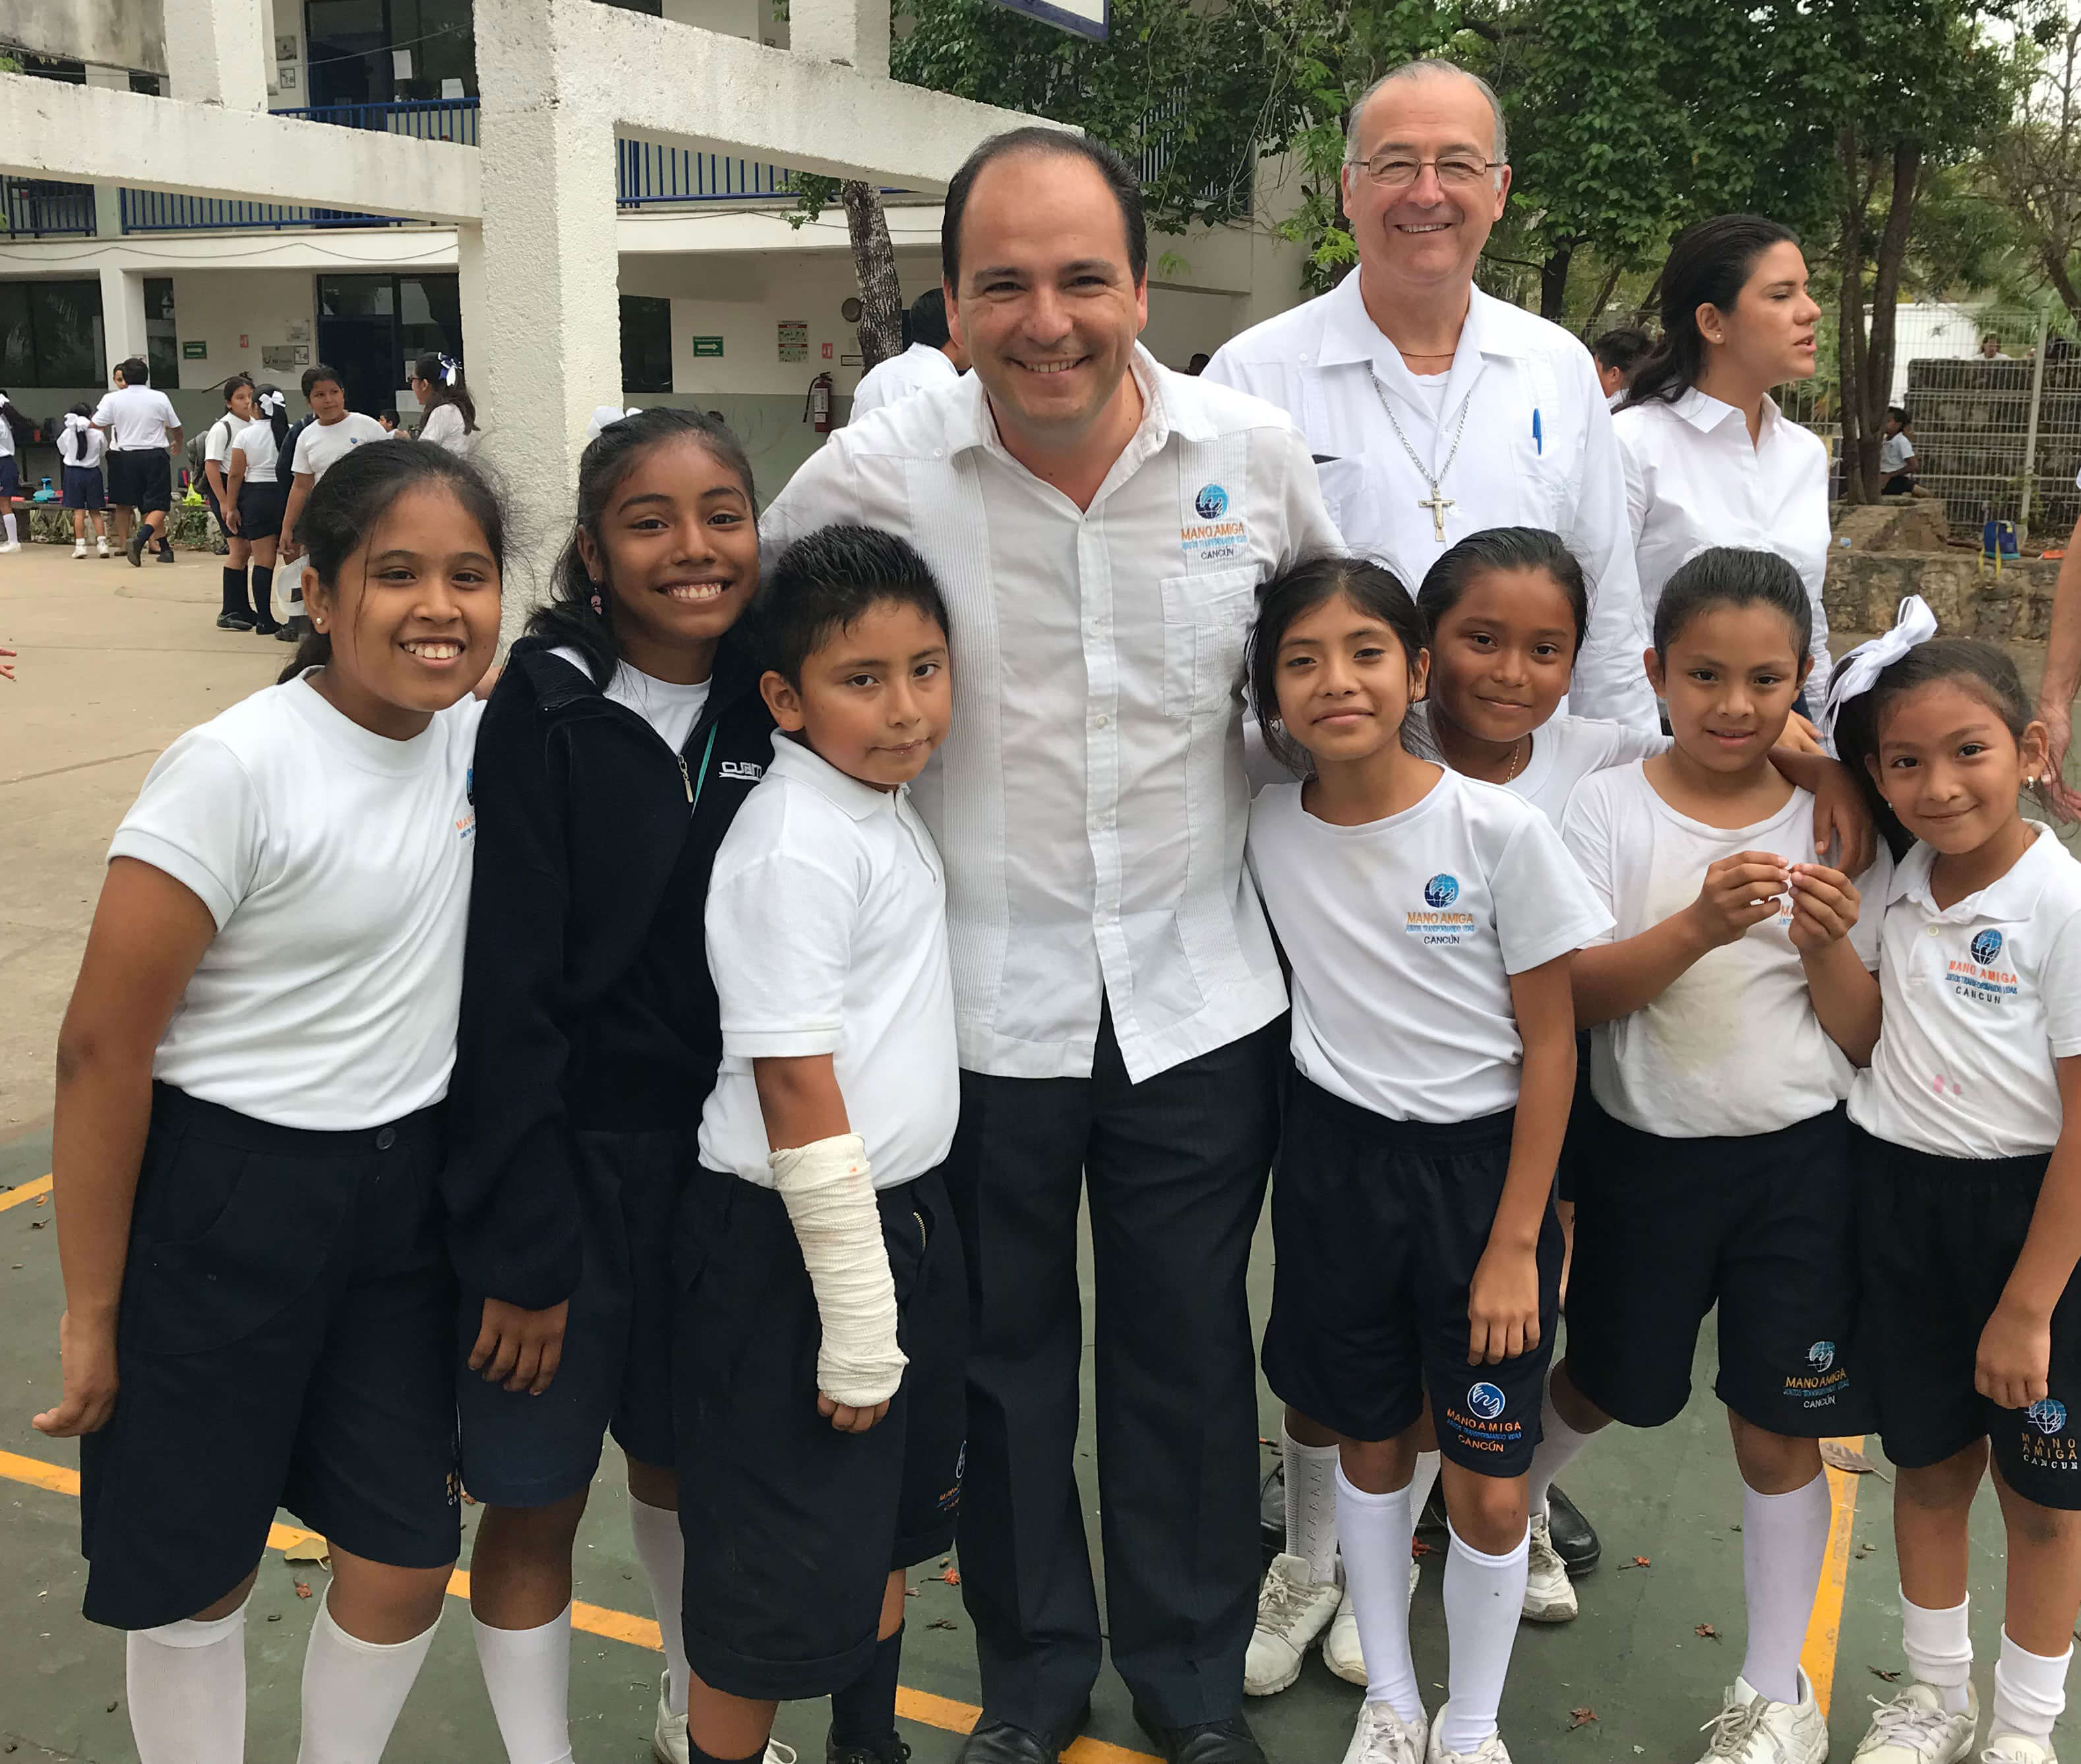 Students with the chaplain and principal